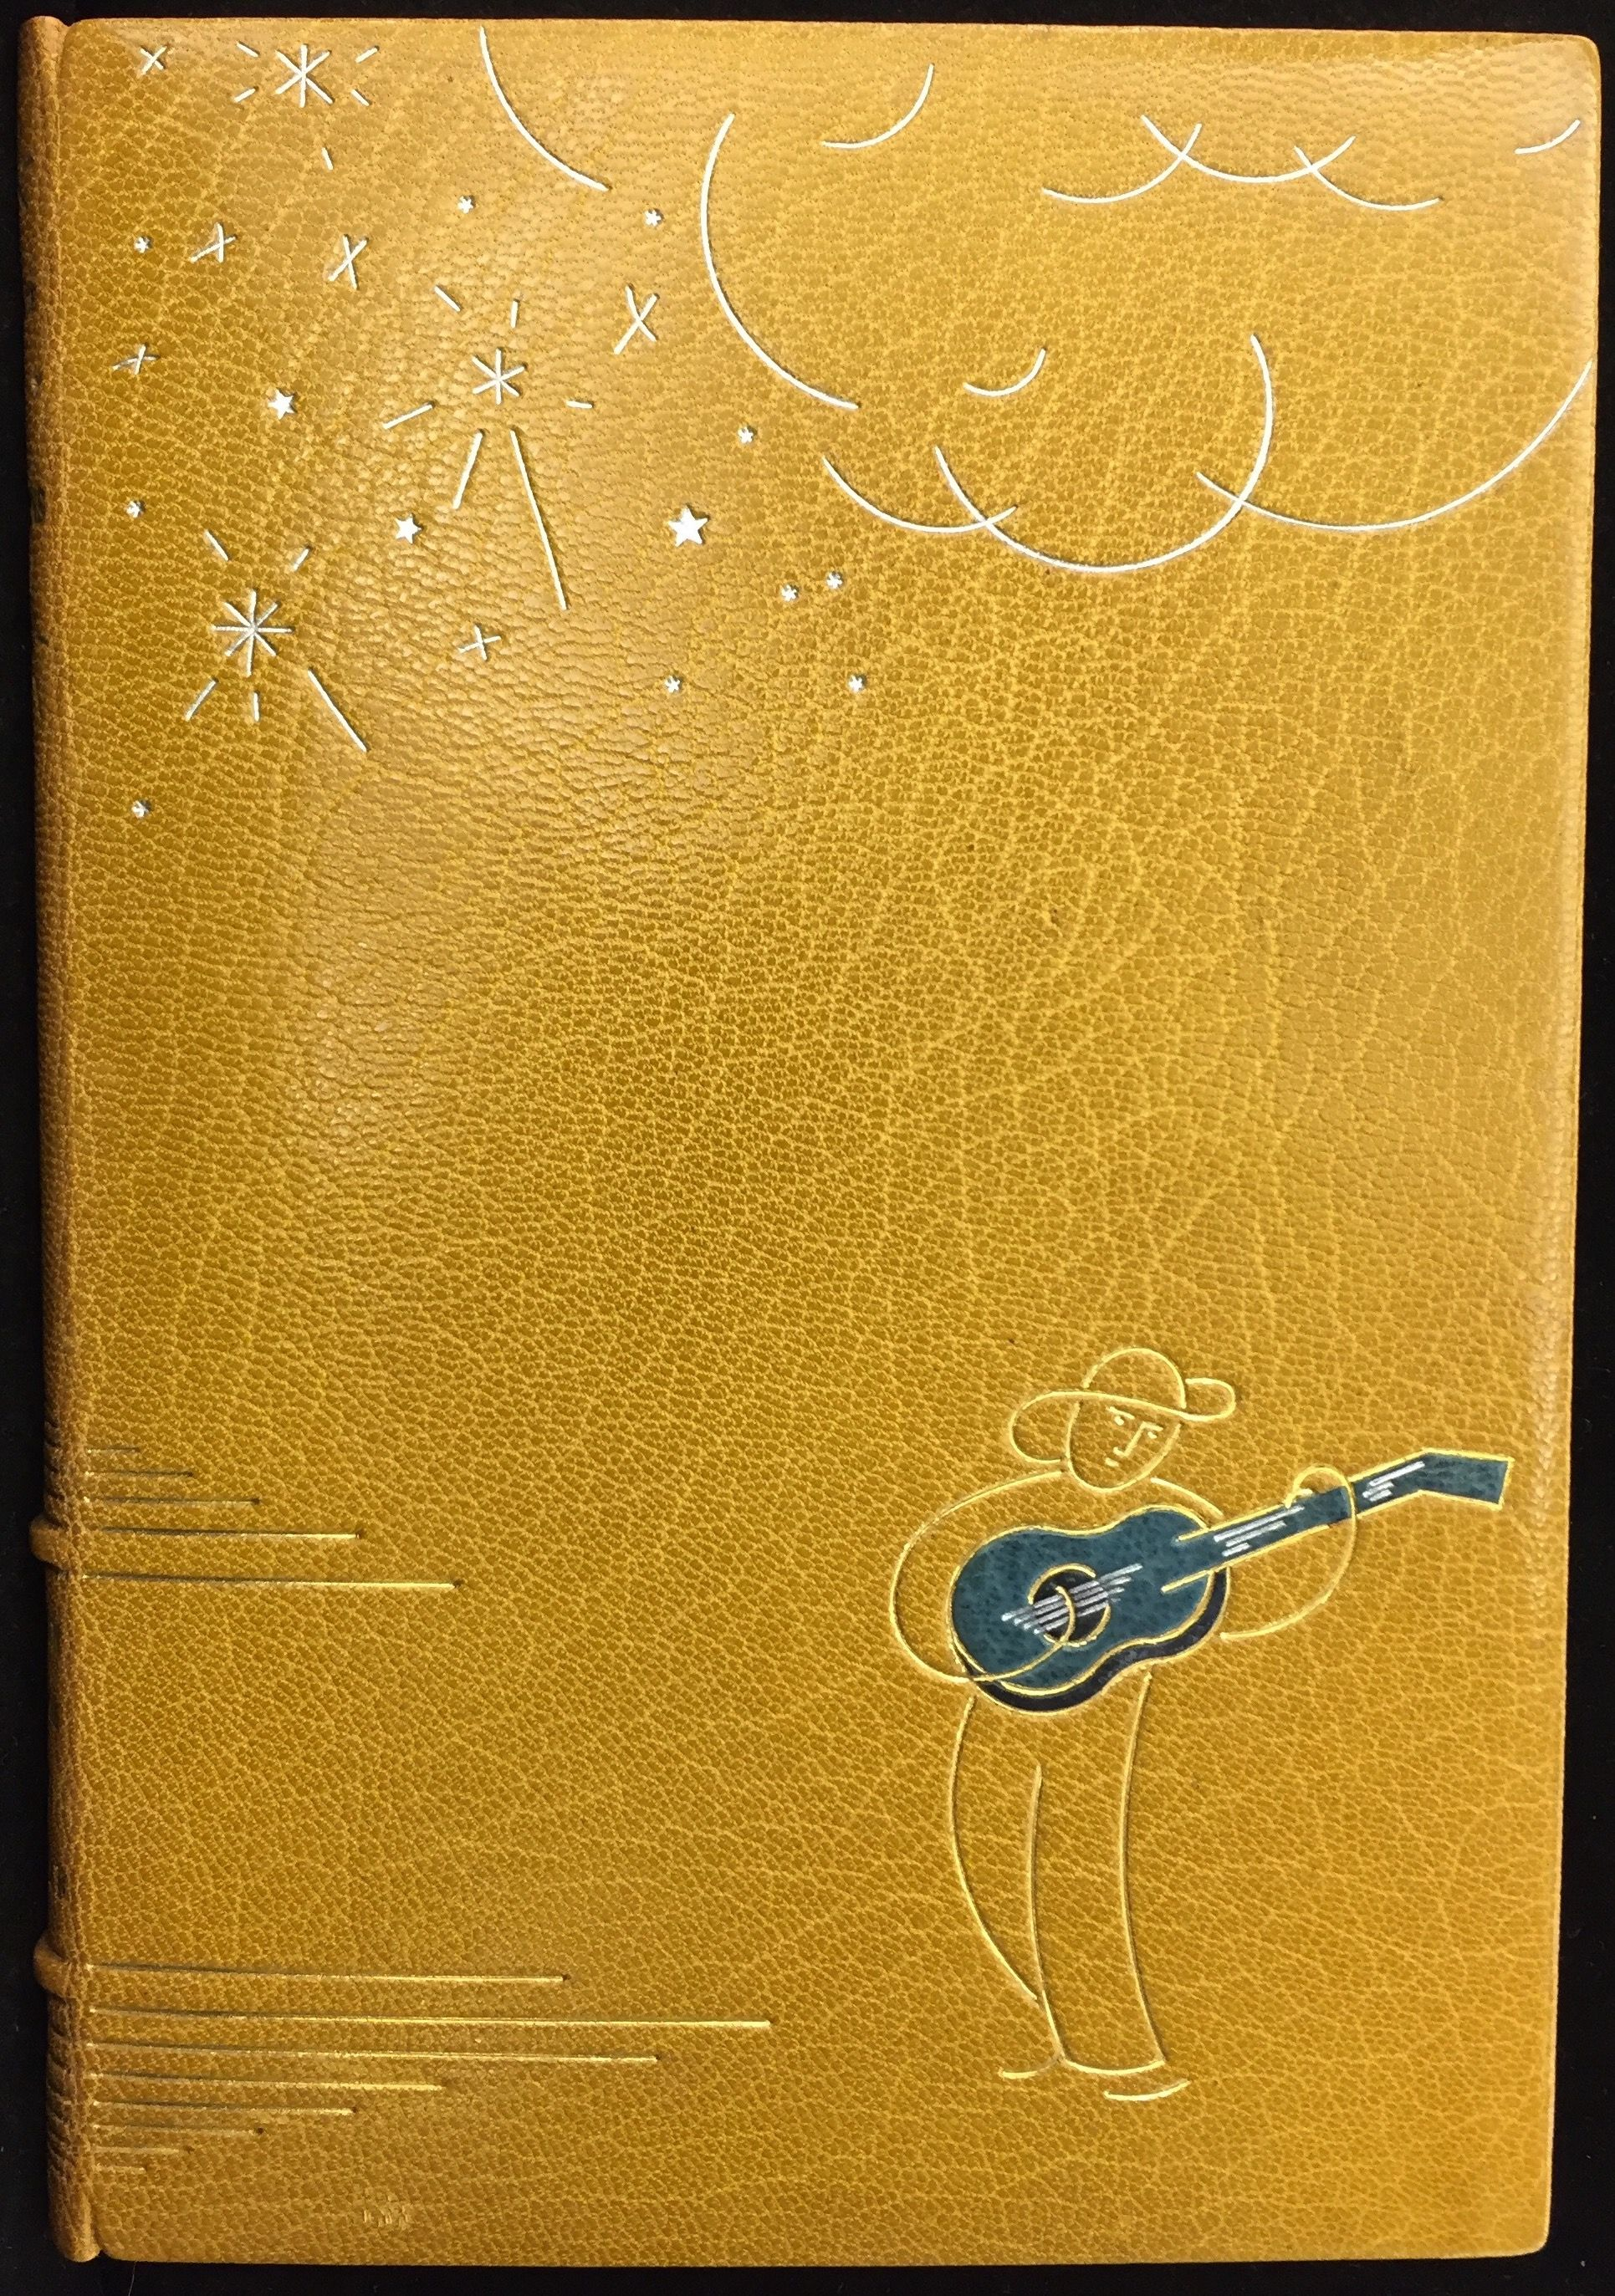 The Man with the Blue Guitar, 1937, binding by René Aussourd.